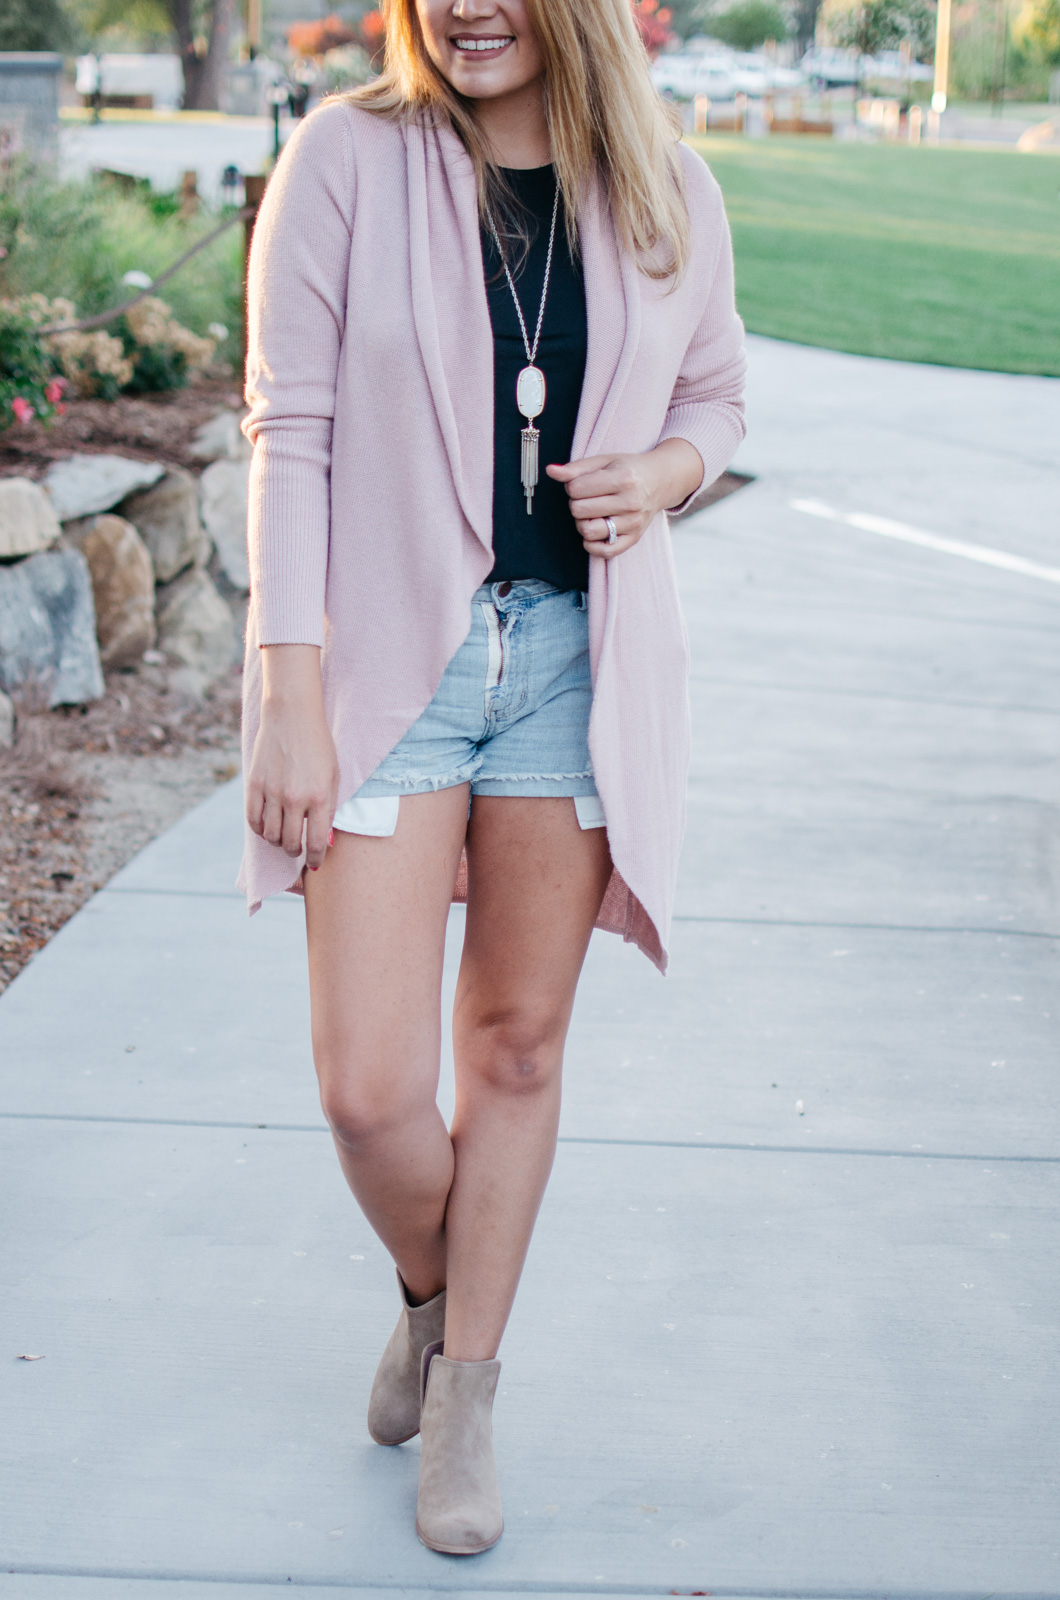 outfit ideas for summer - early fall outfit: how to wear a cardigan sweater during summer | bylaurenm.com